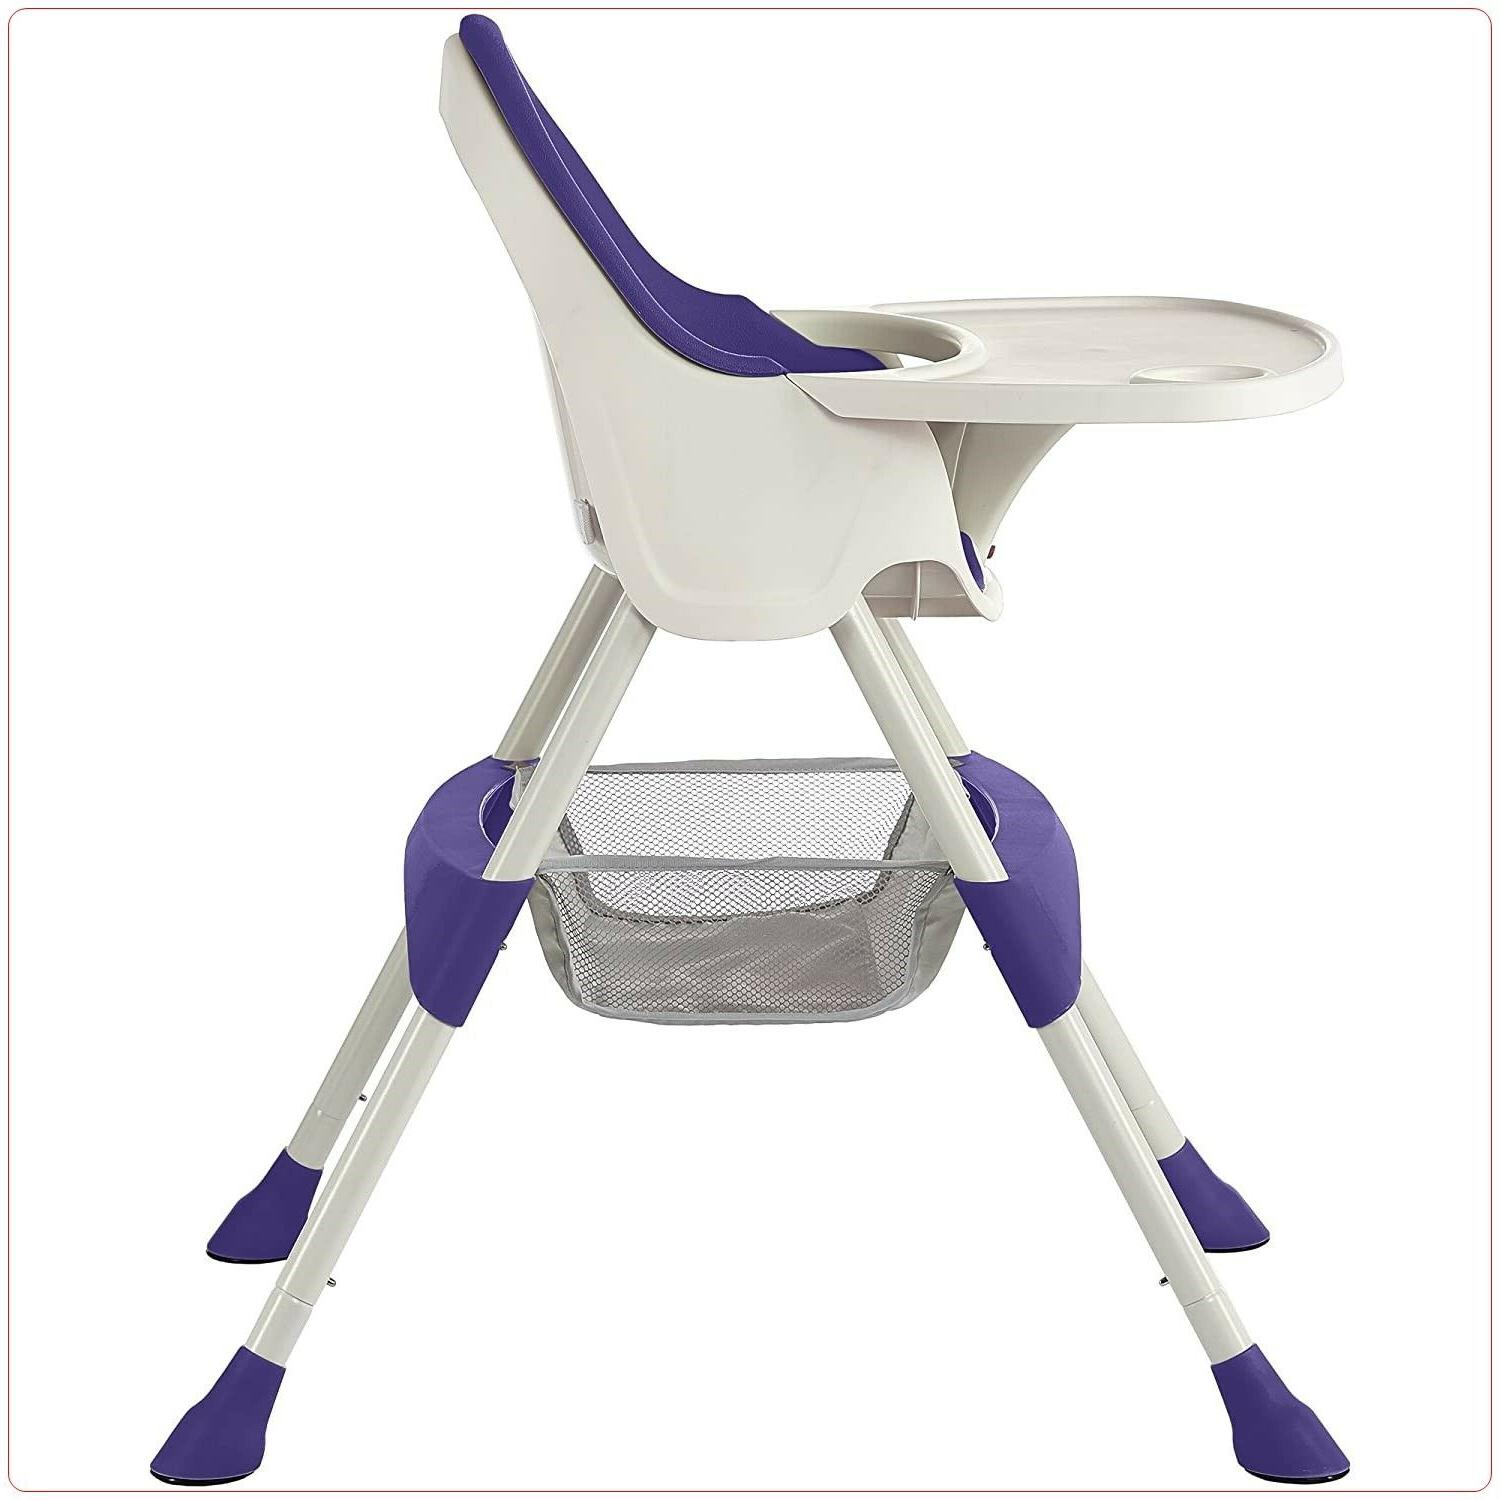 Baby Chair Size with Removable Purple